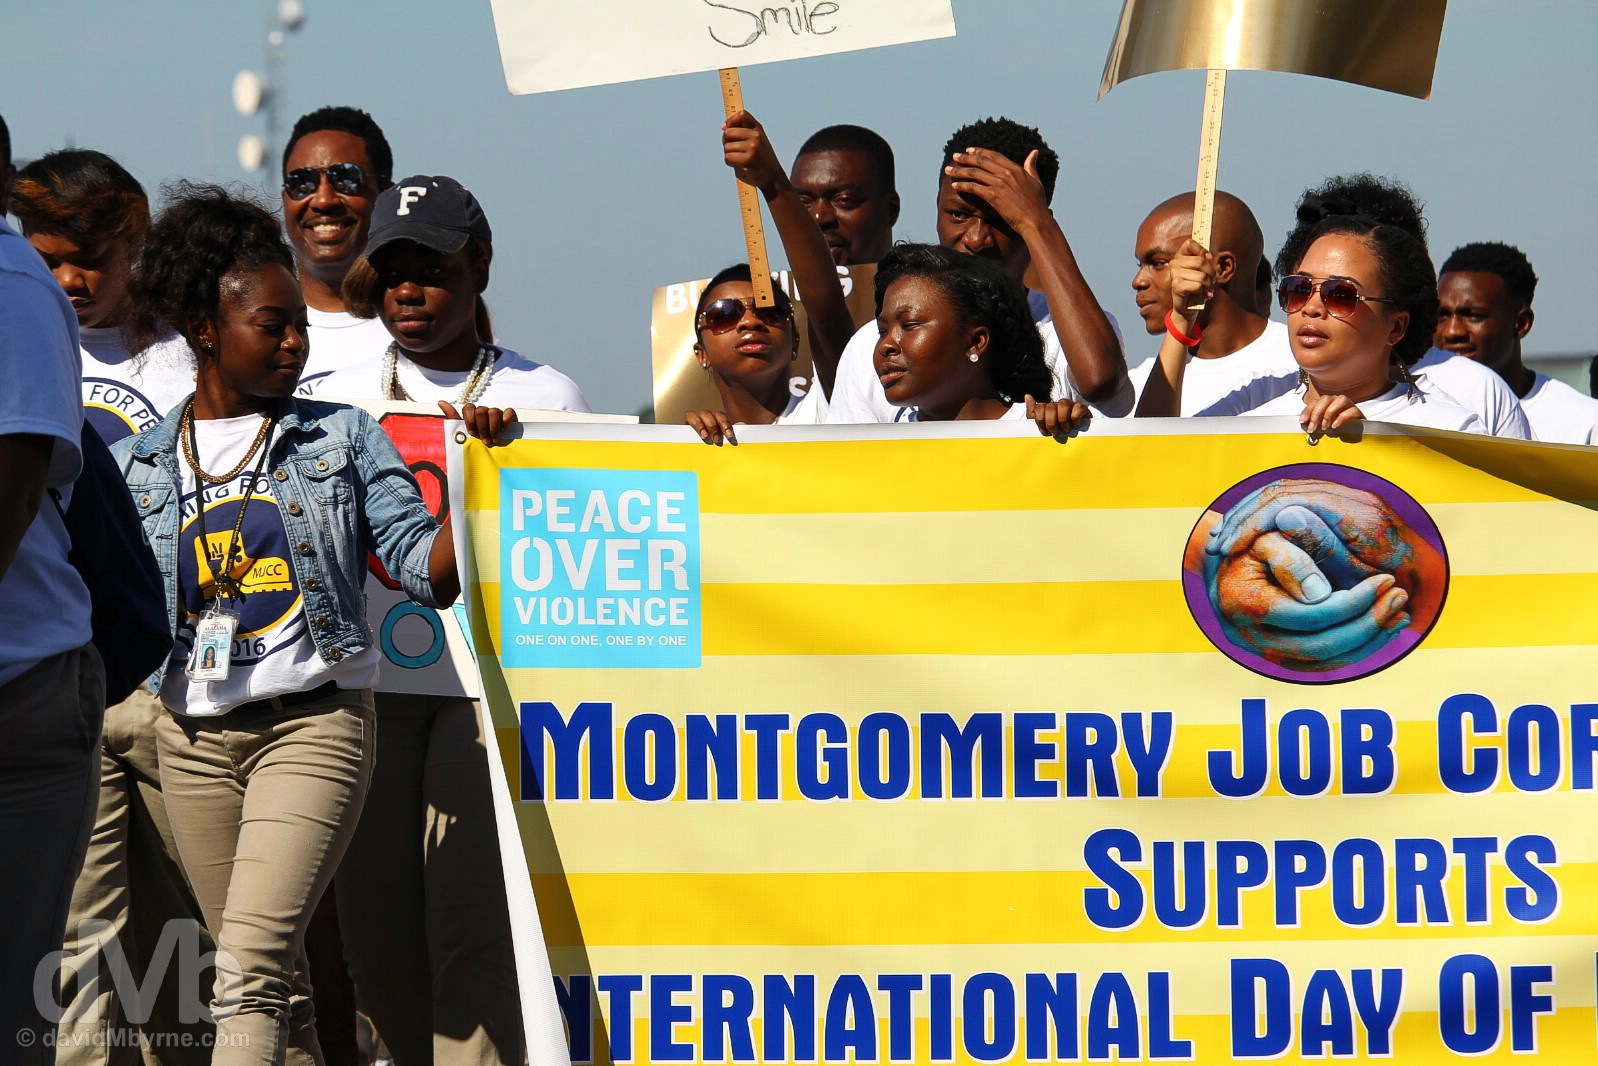 International Day of Peace 2016 March on Dexter Avenue, Montgomery, Alabama, USA. September 21, 2016.